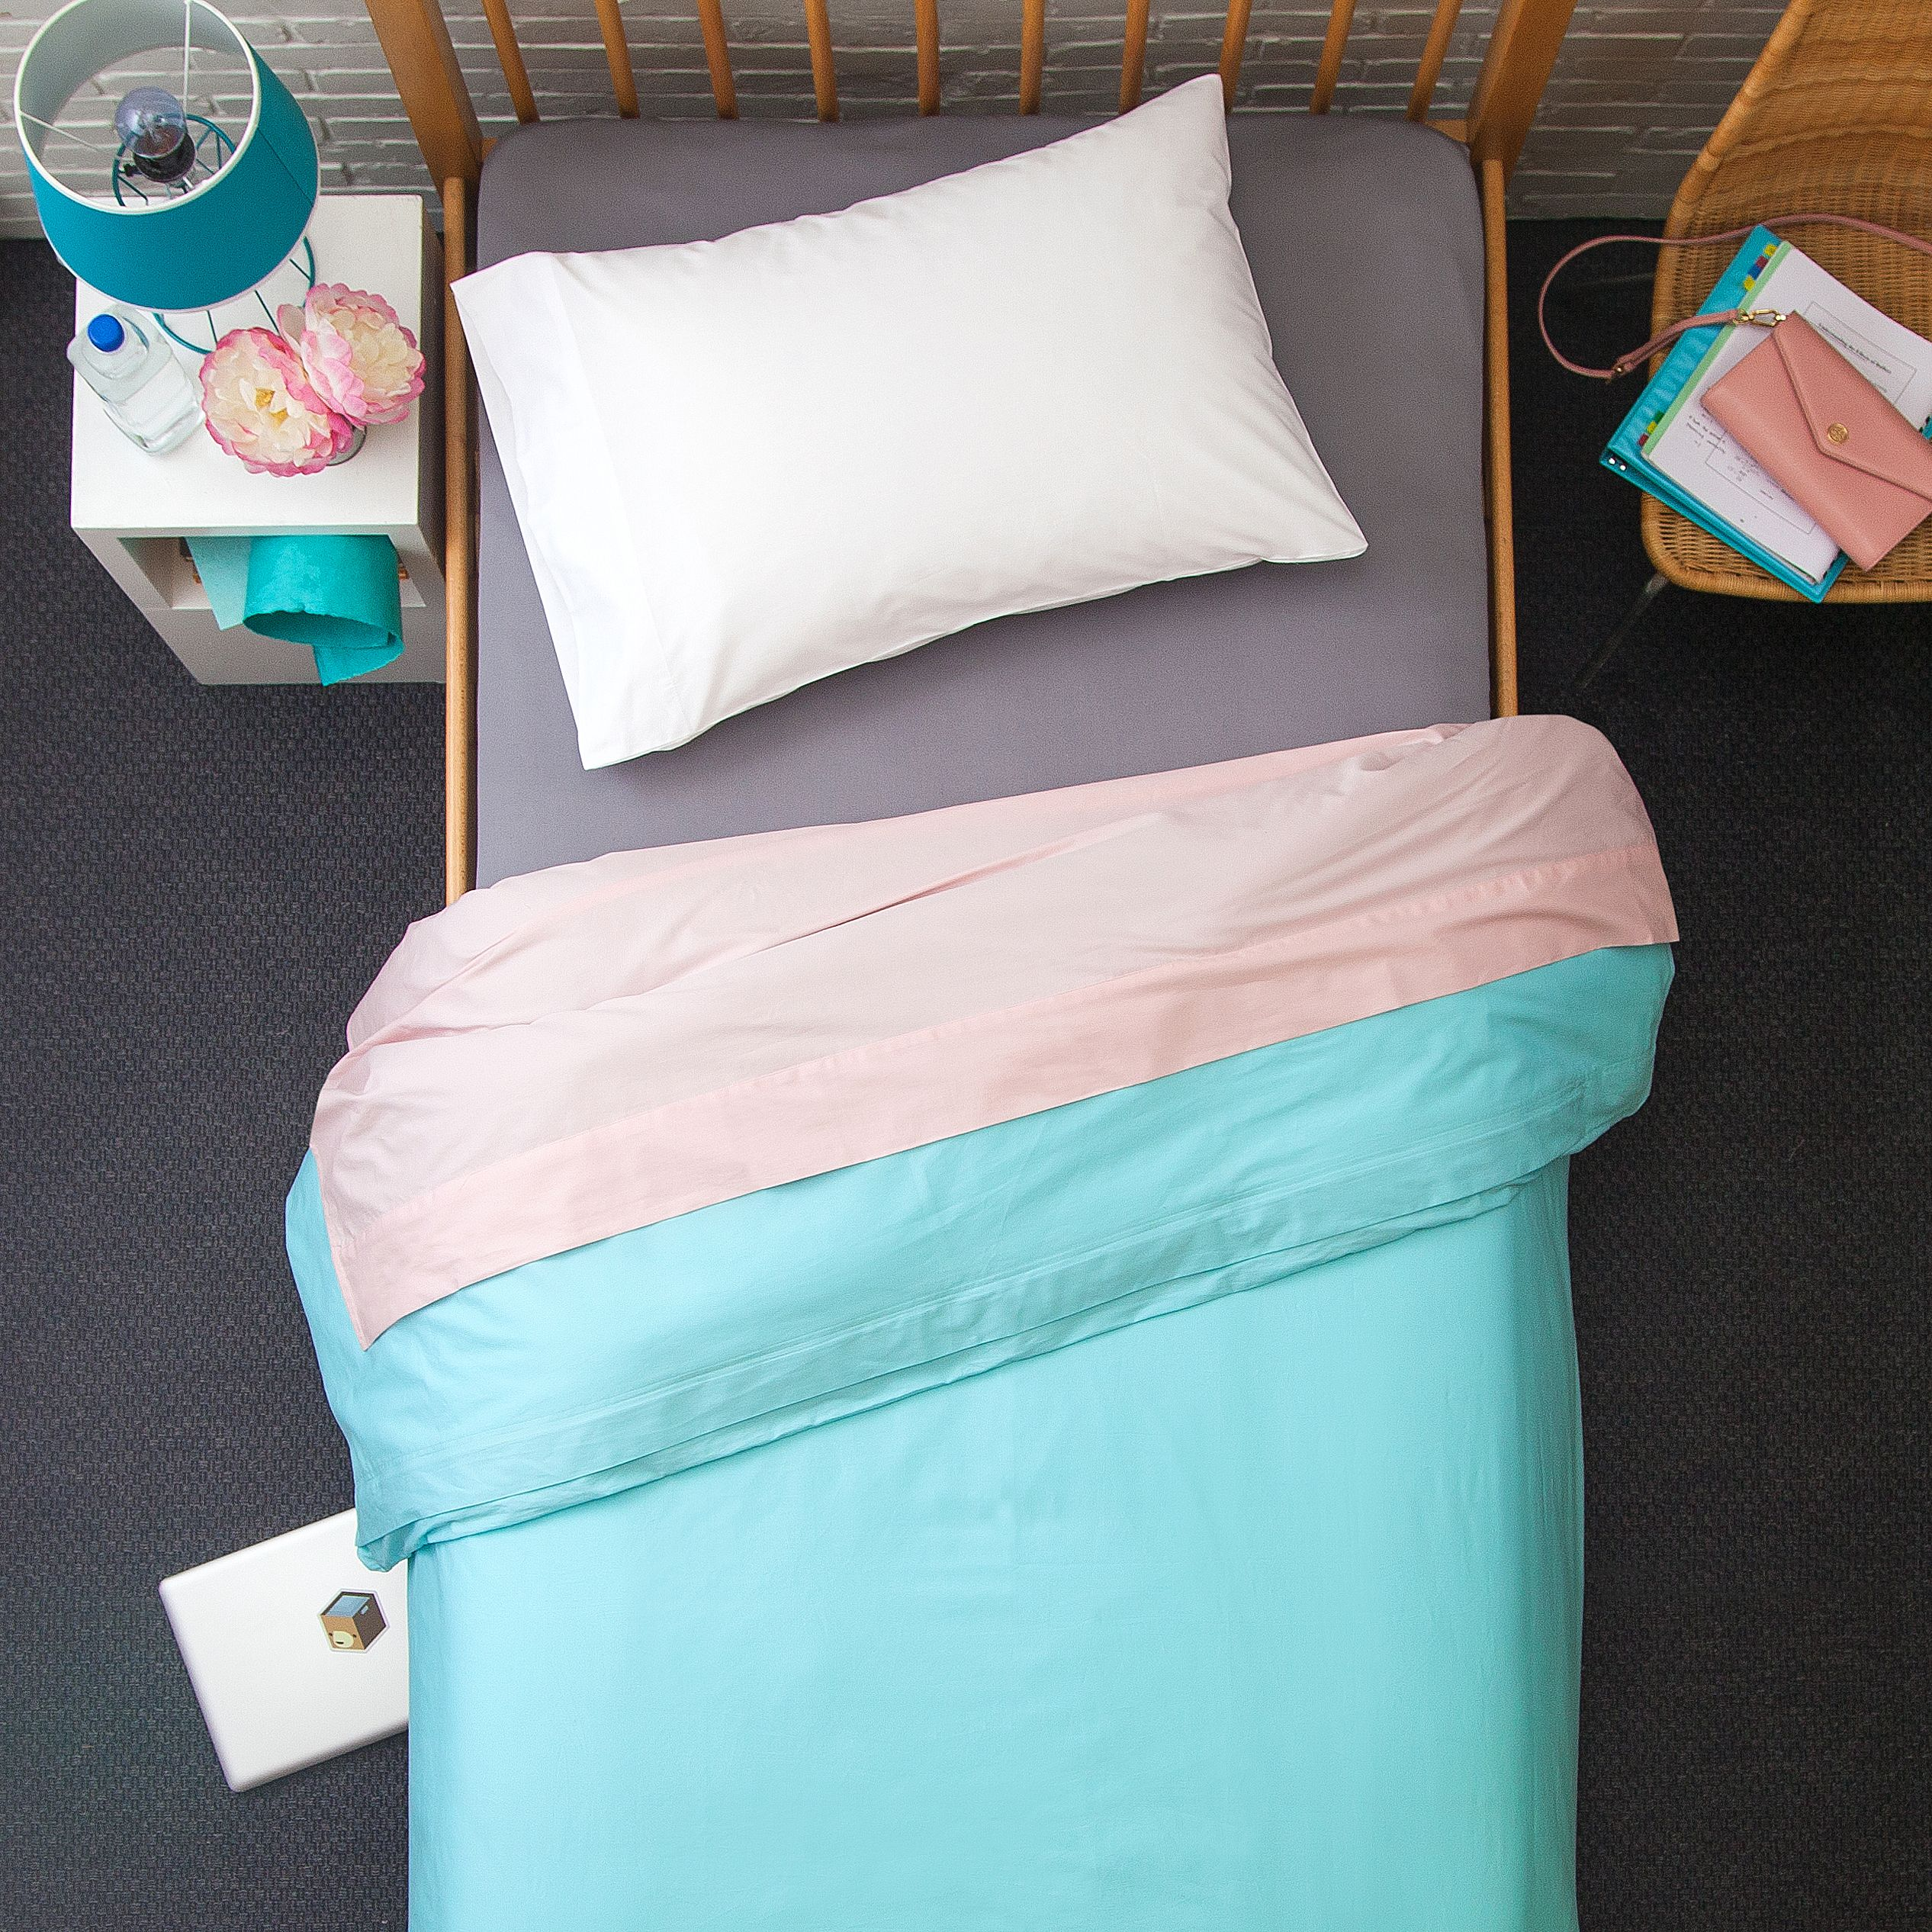 Boxt Teddy Twin XL-4 Piece Bedding Bundle- Champaign